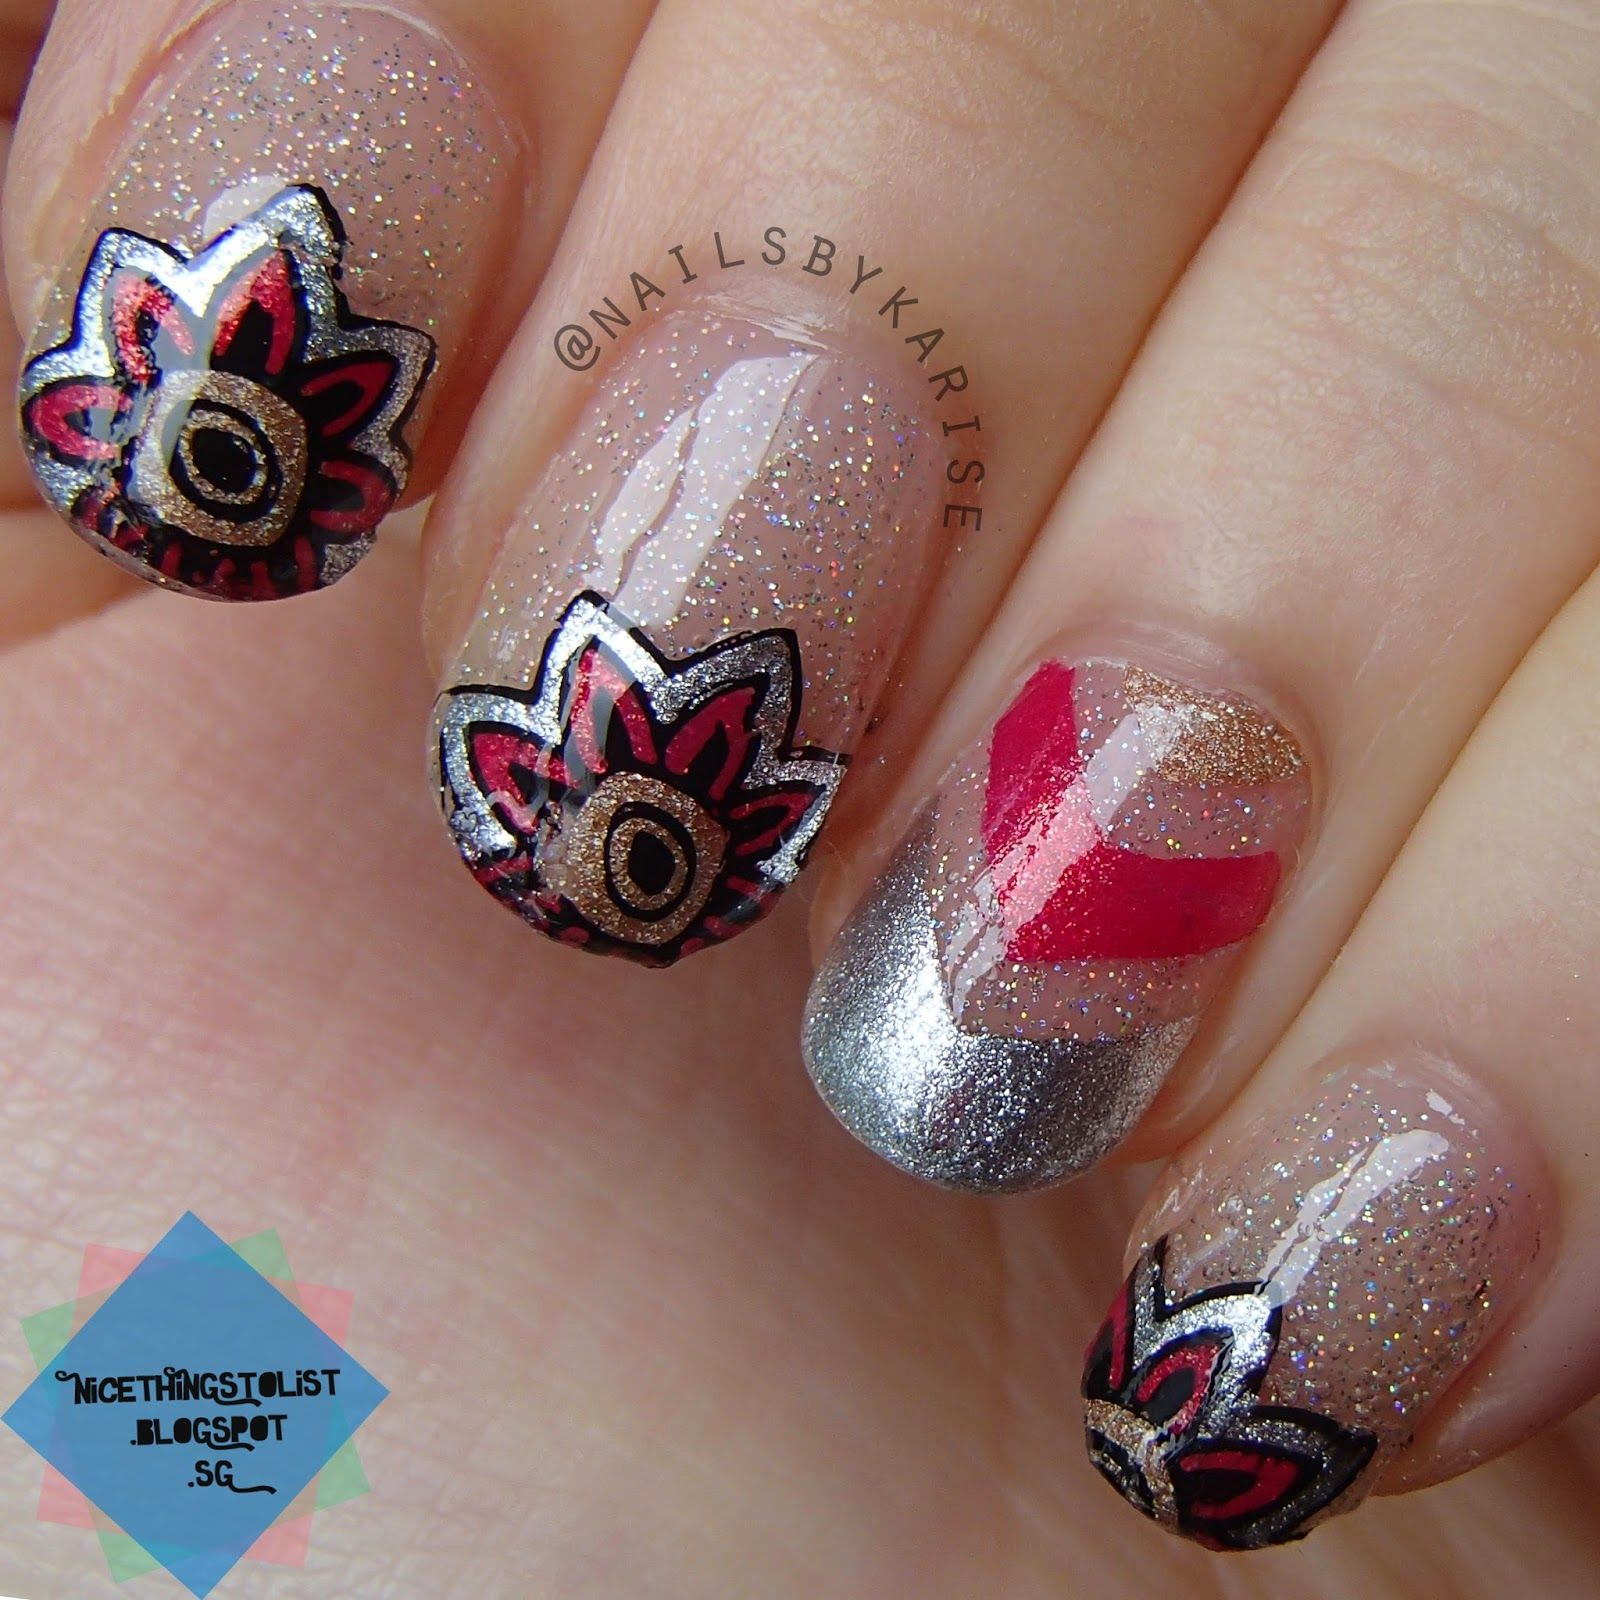 Happy Chinese New Year everyone! Here is my nails for this occasion :) I used bornprettystore stamping plate Qgirl-027 and did this look with reverse stamping. Read my tutorial and how to achieve this look here: http://nicethingstolist.blogspot.sg/2015/02/happy-cny-reverse-stamping-qgirl-027.html